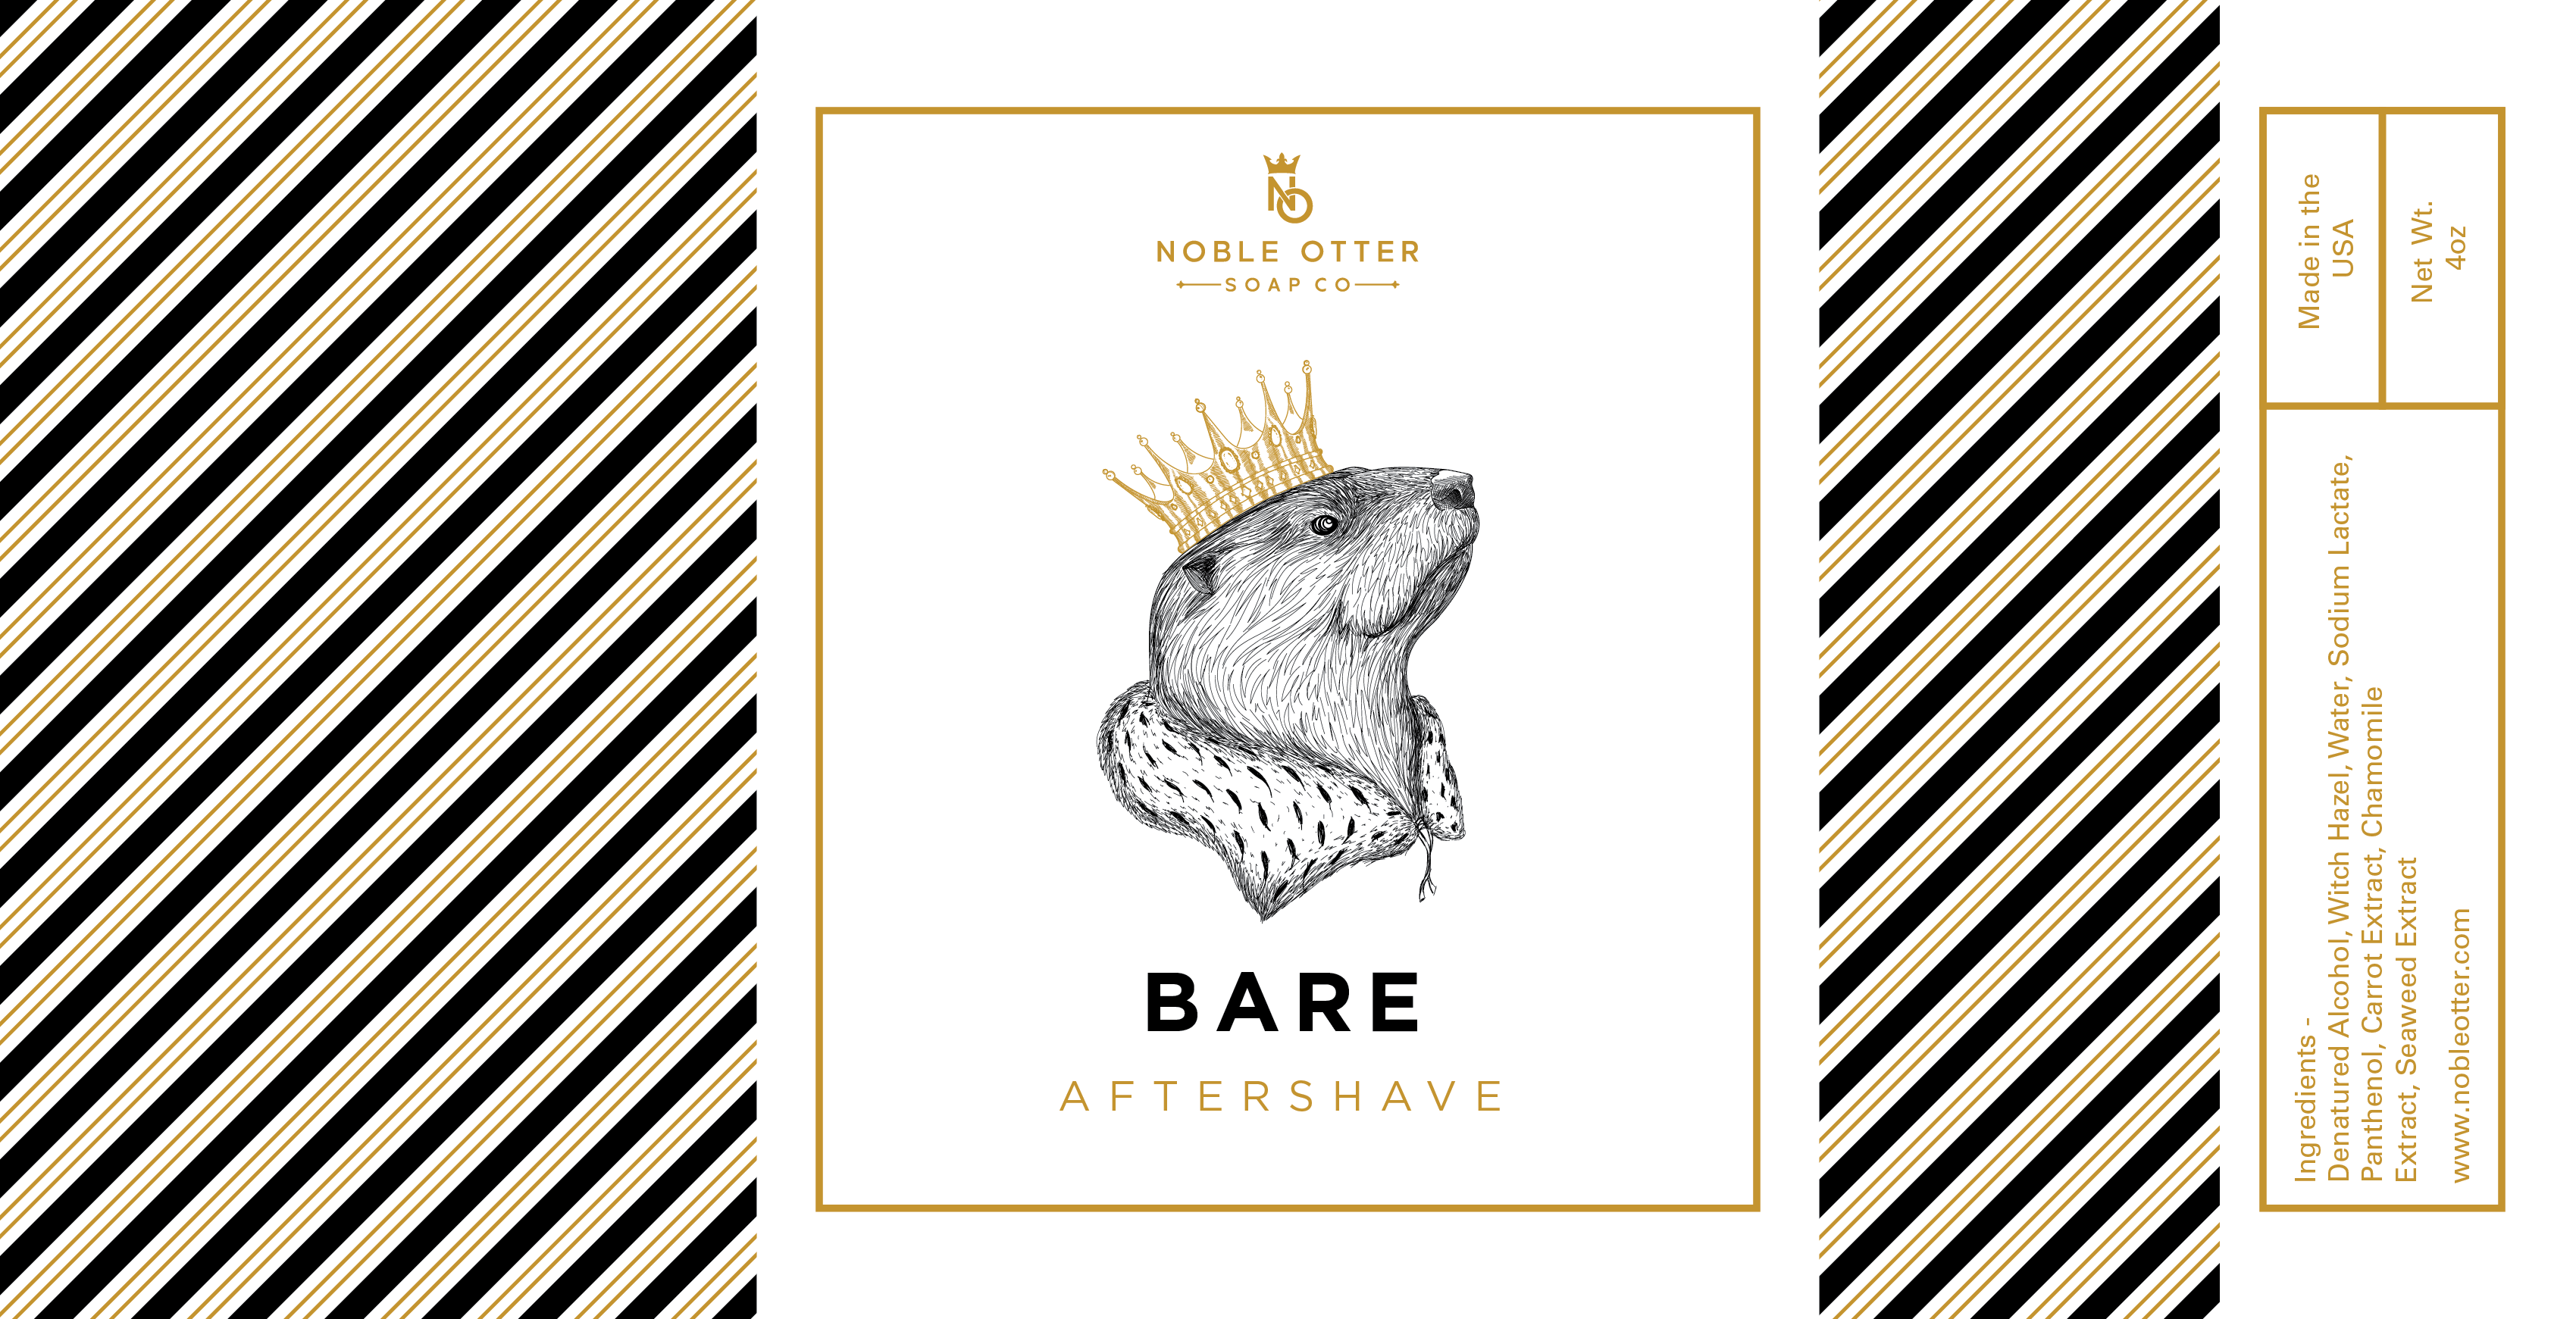 Noble Otter - Bare - Aftershave image